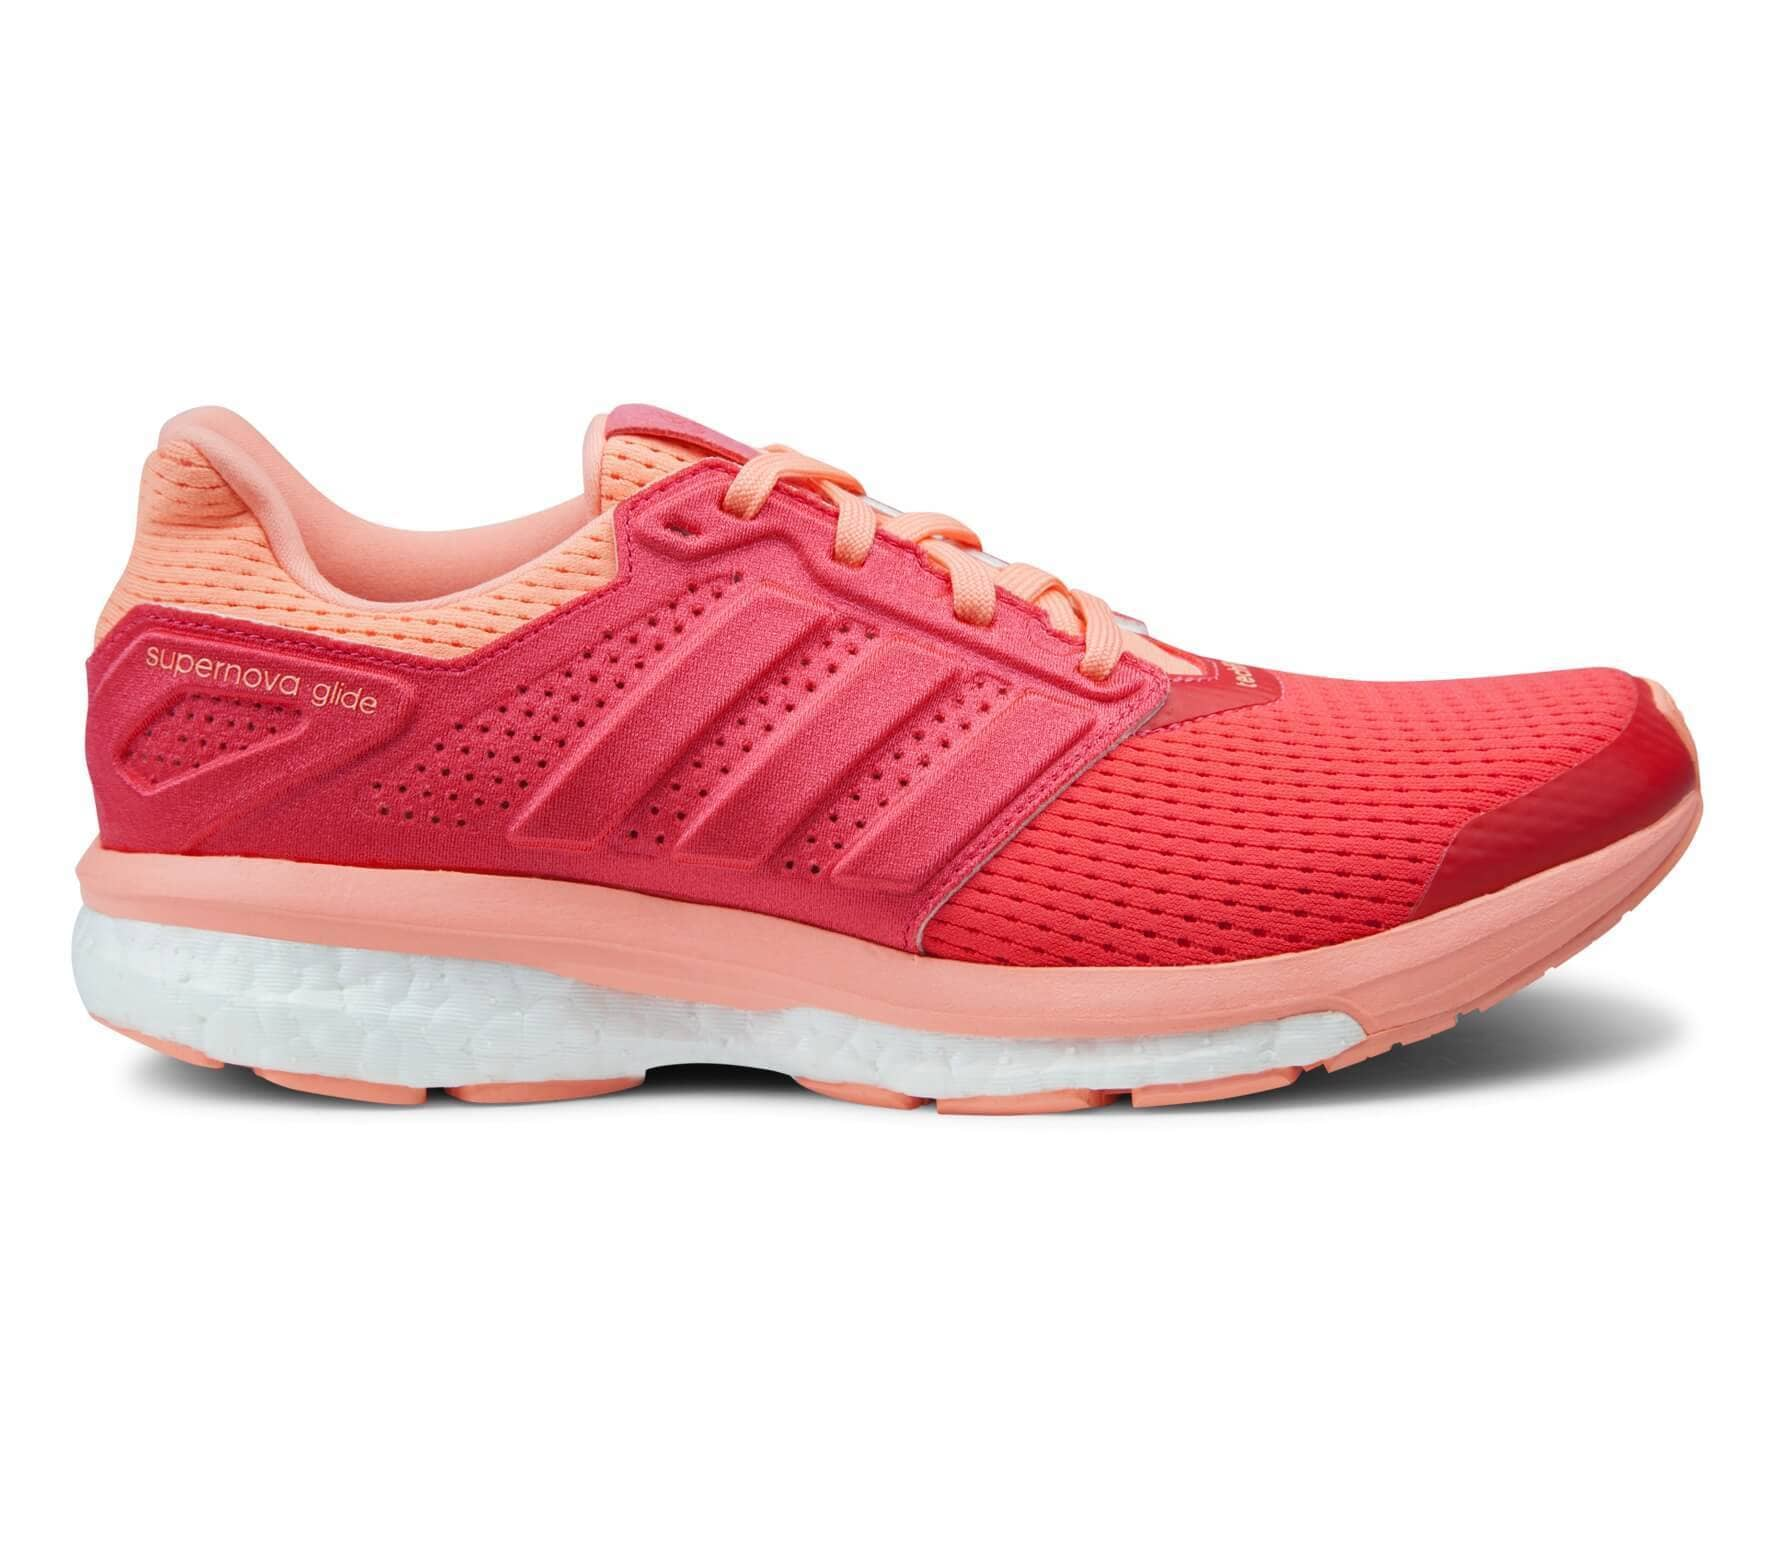 Adidas - Supernova Glide Boost 8 women's running shoes (red)